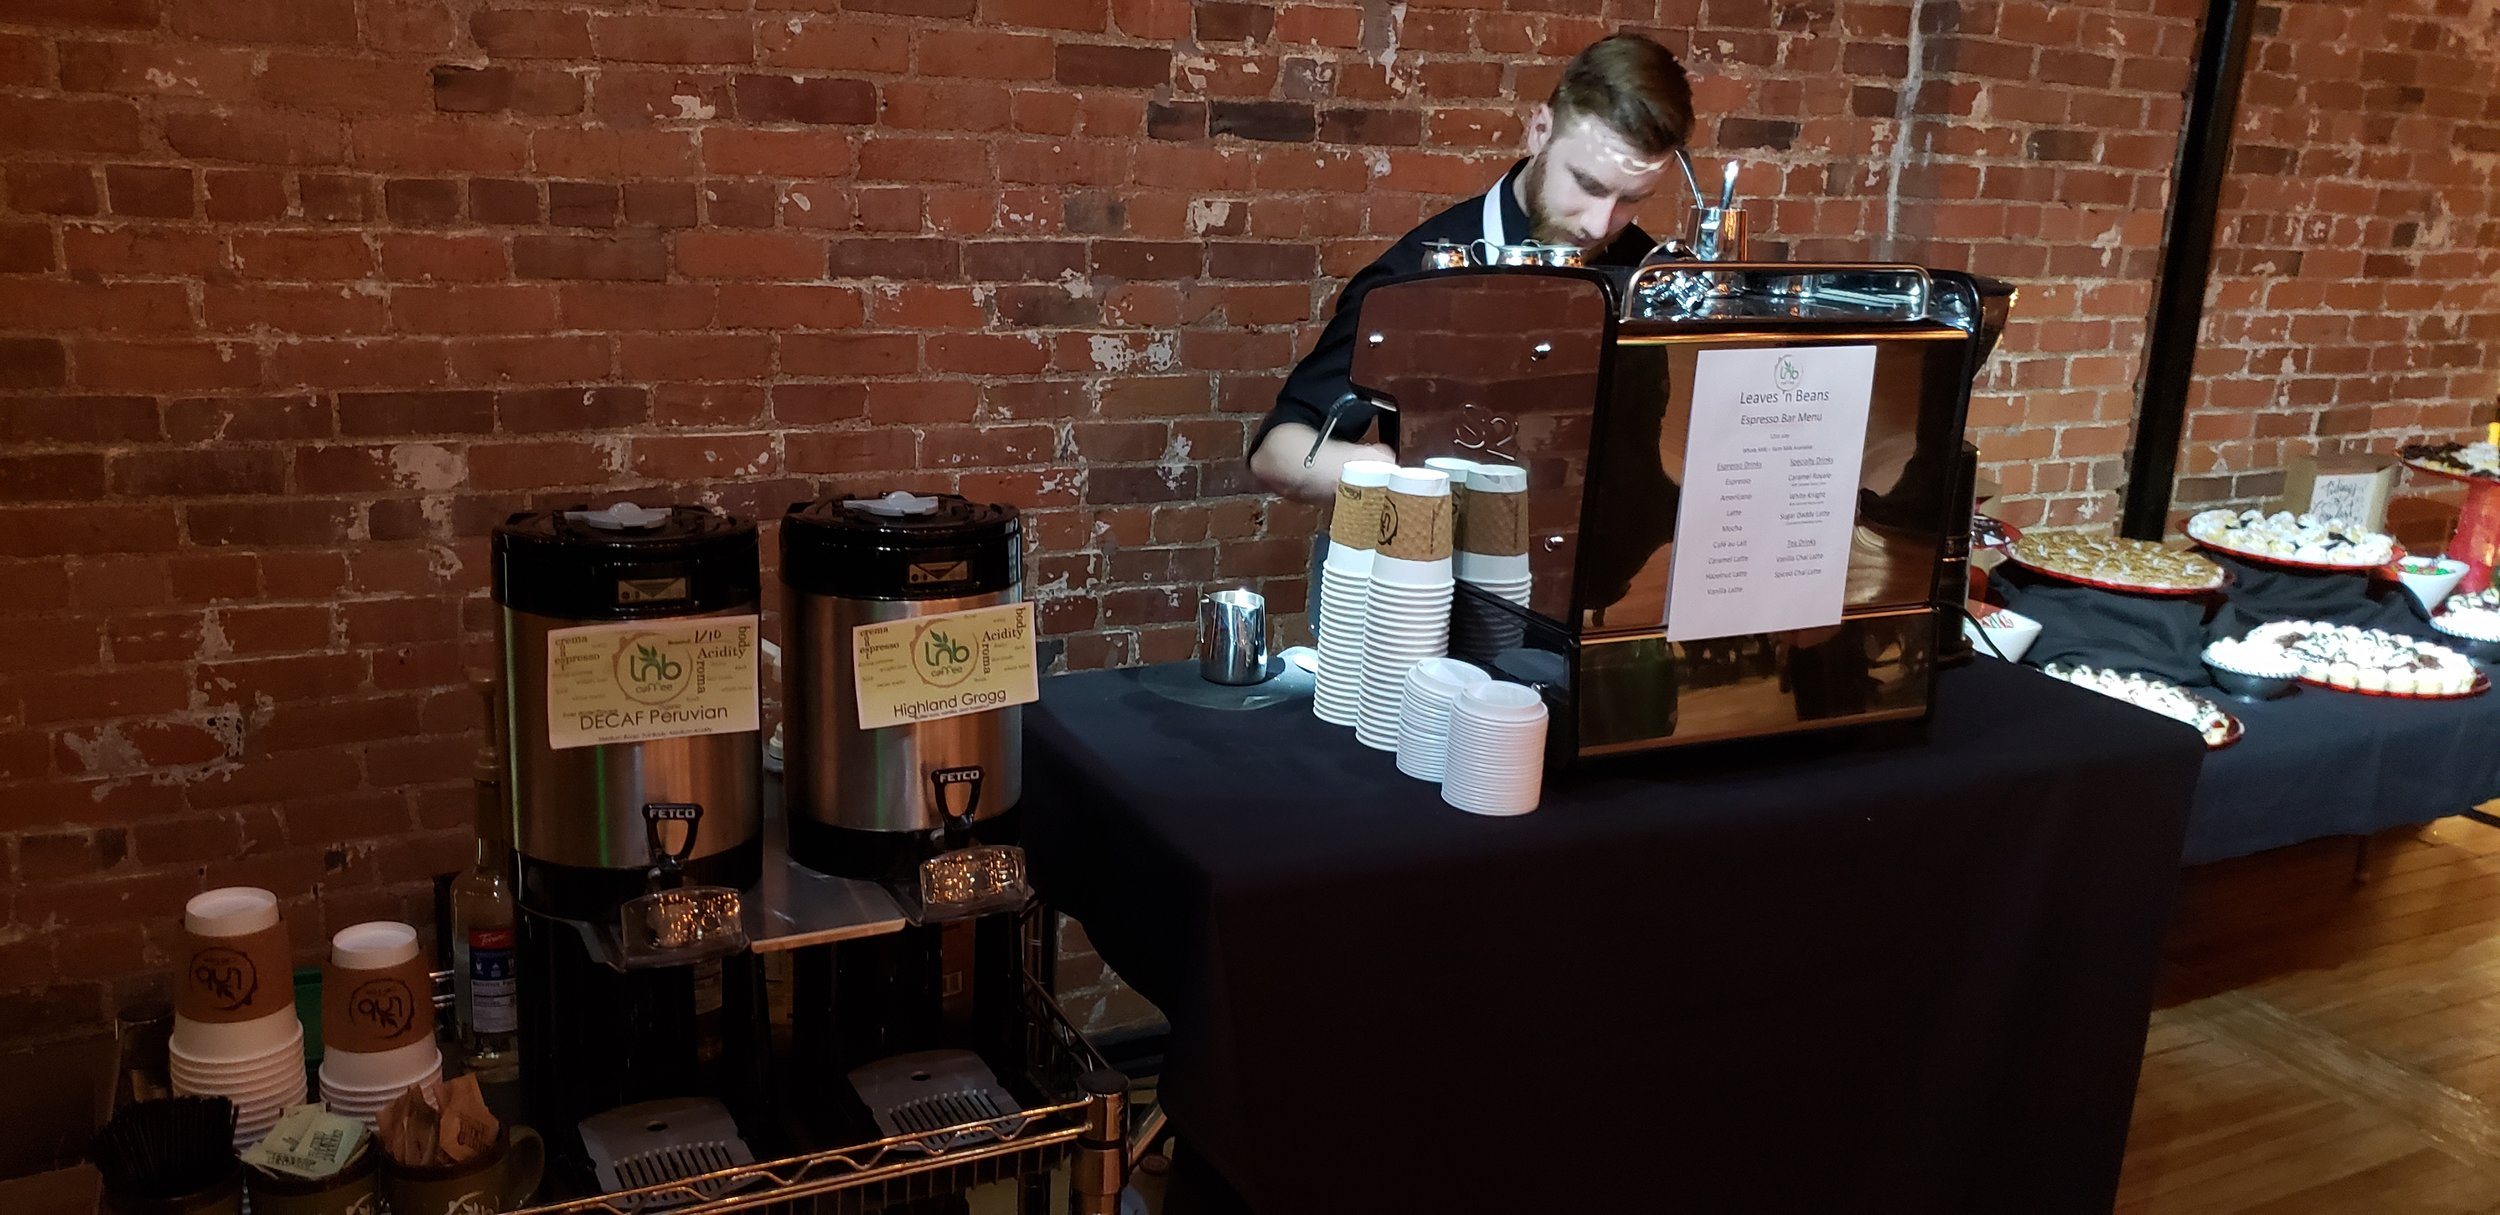 Leaves 'n Beans Espresso Bar $400 - Unlimited Brewed Coffee for 3 hours with a full-time on site barista. Espresso machine for café style drinks made for each guest. Drinks served both hot and iced to please all tastes.